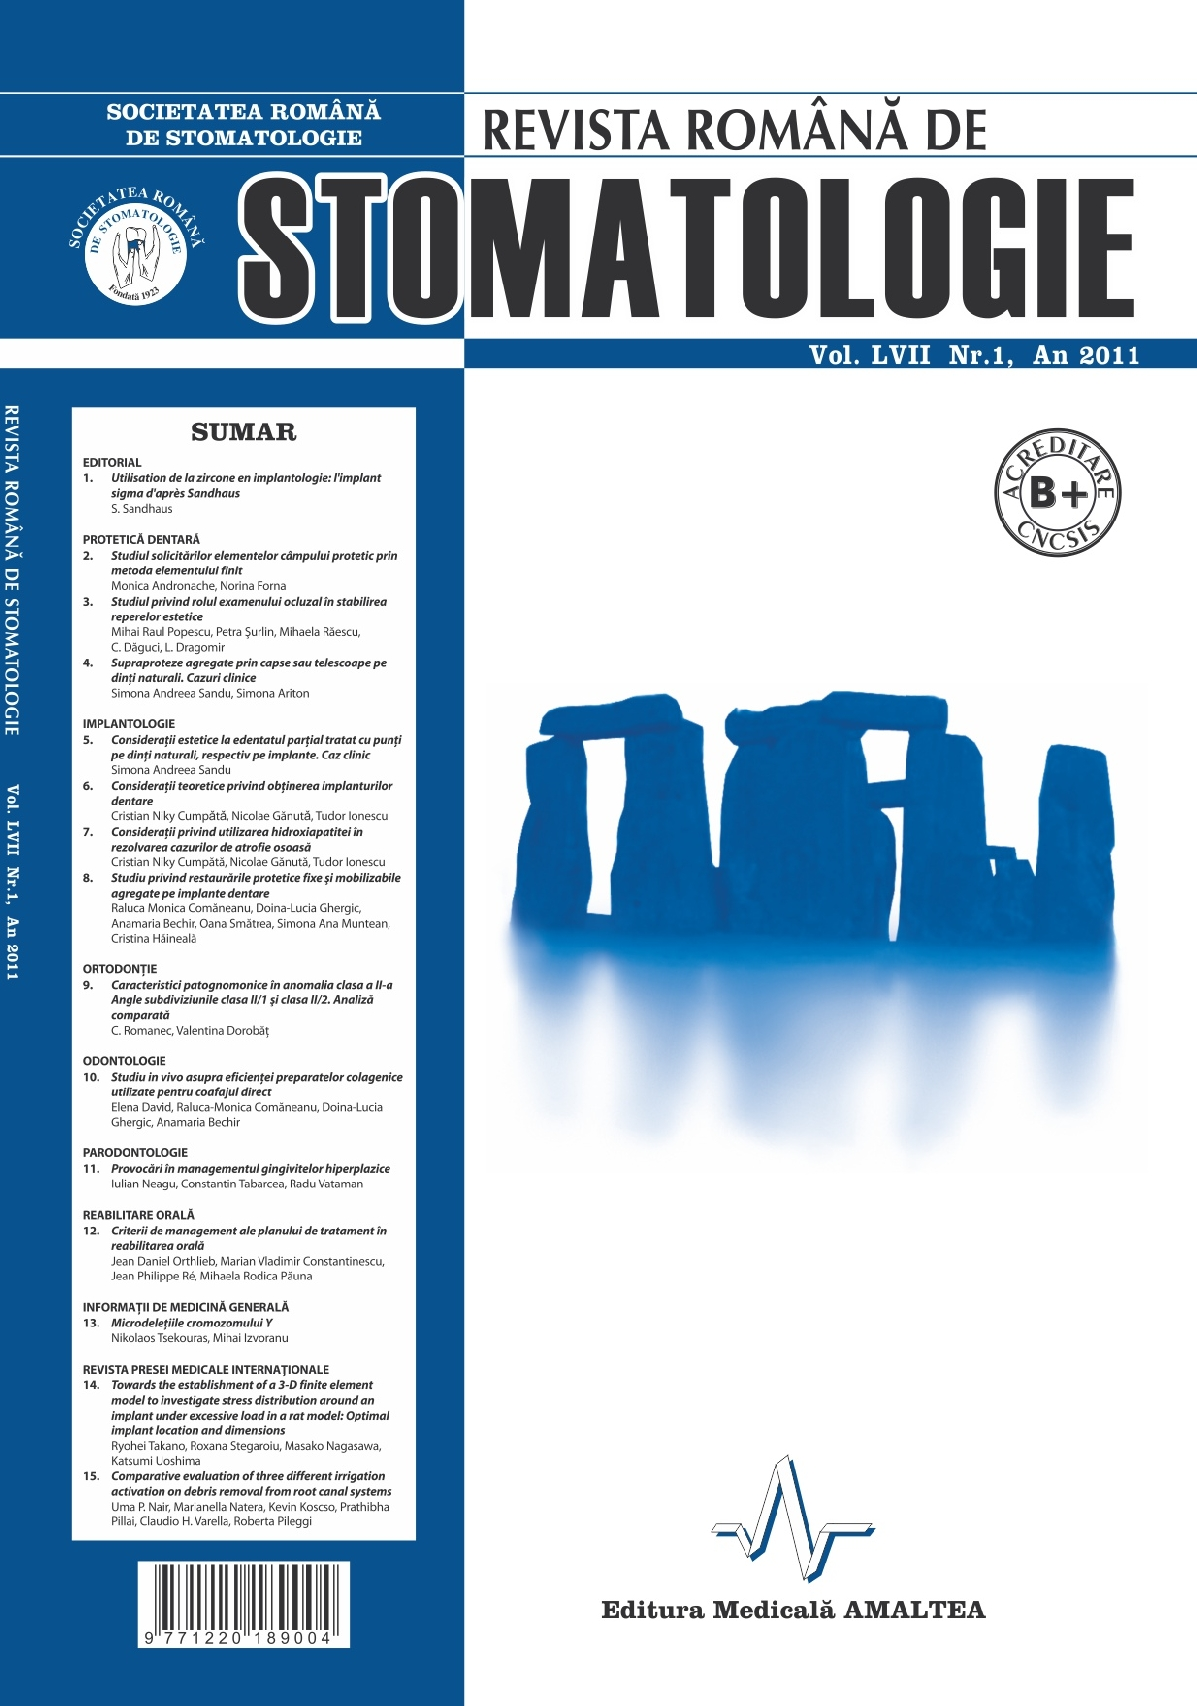 Revista Romana de STOMATOLOGIE - Romanian Journal of Stomatology, Vol. LVII, Nr. 1, An 2011